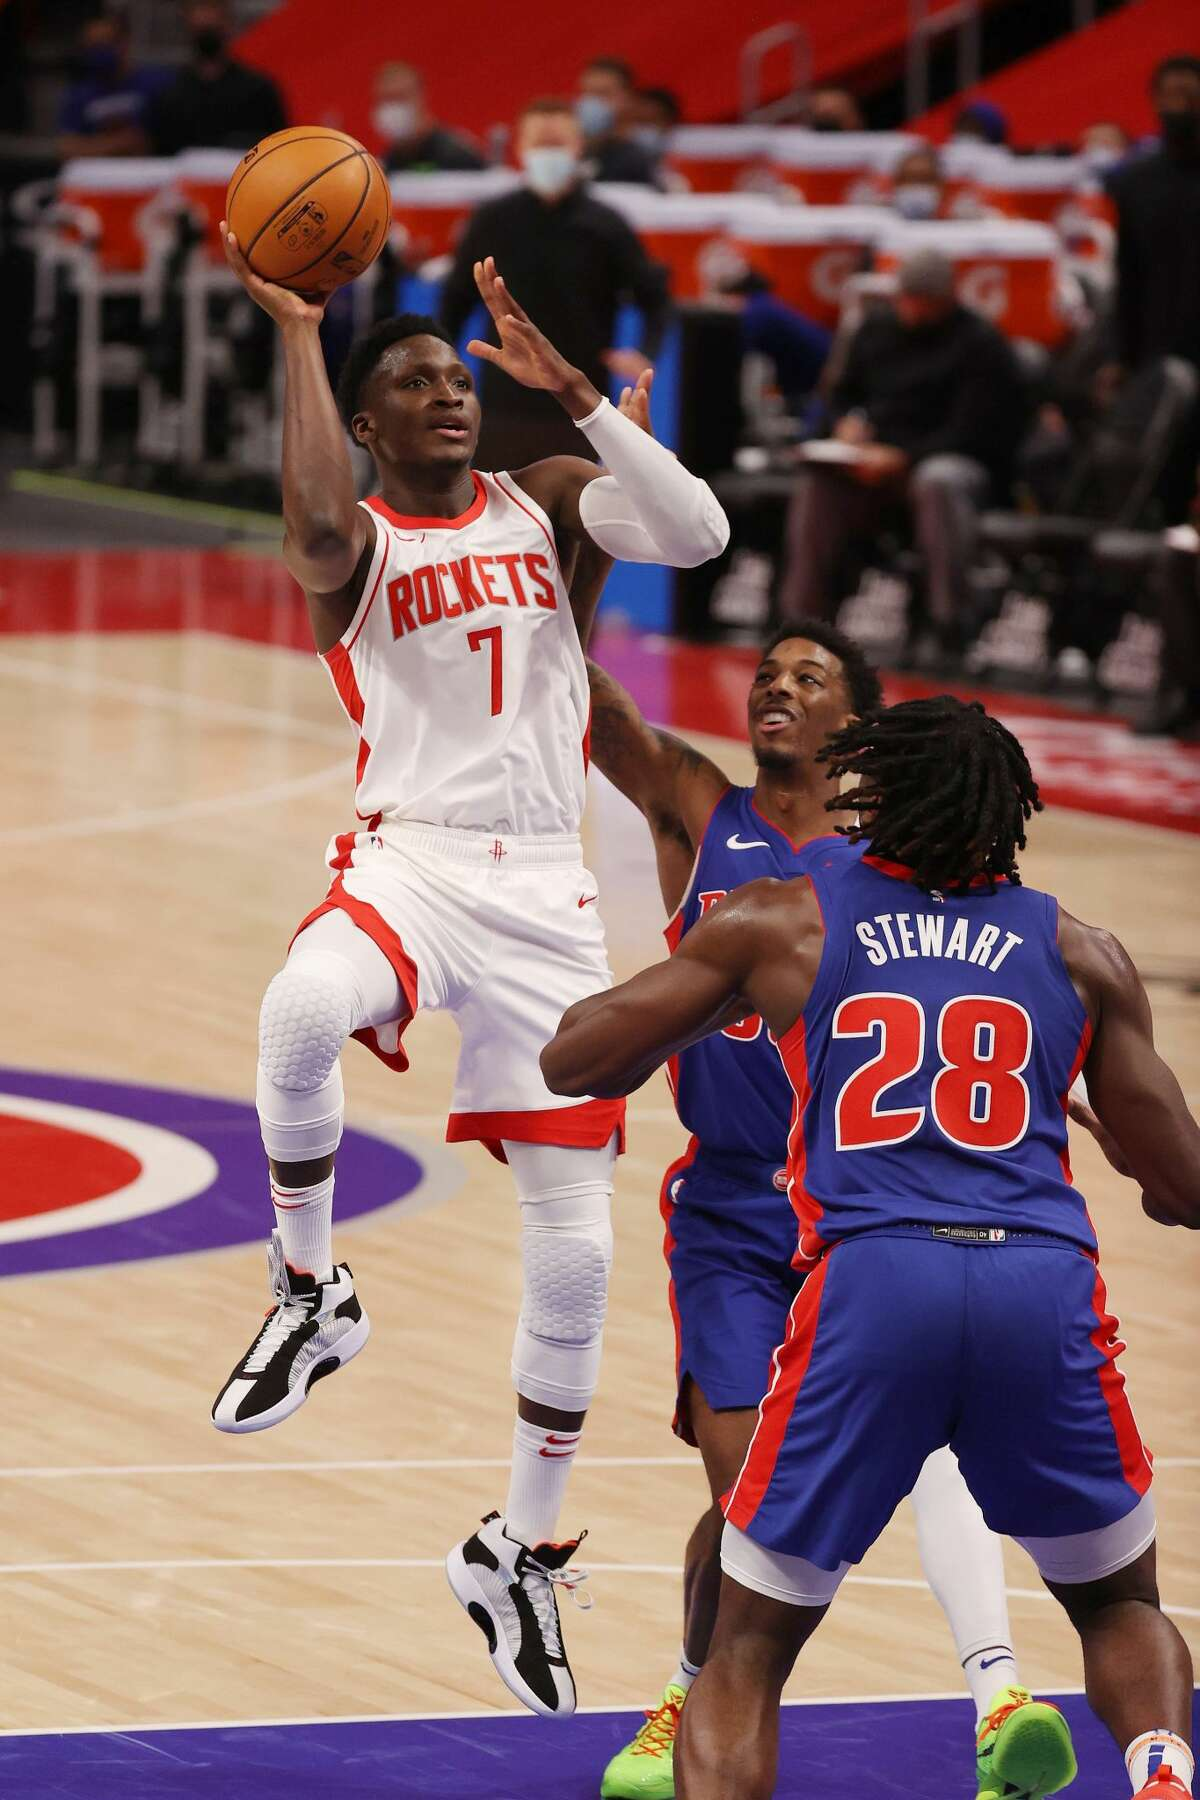 DETROIT, MICHIGAN - JANUARY 22: Victor Oladipo #7 of the Houston Rockets drives to the basket against Delon Wright #55 and Isaiah Stewart #28 of the Detroit Pistons during the first half at Little Caesars Arena on January 22, 2021 in Detroit, Michigan. NOTE TO USER: User expressly acknowledges and agrees that, by downloading and or using this photograph, User is consenting to the terms and conditions of the Getty Images License Agreement. (Photo by Gregory Shamus/Getty Images)